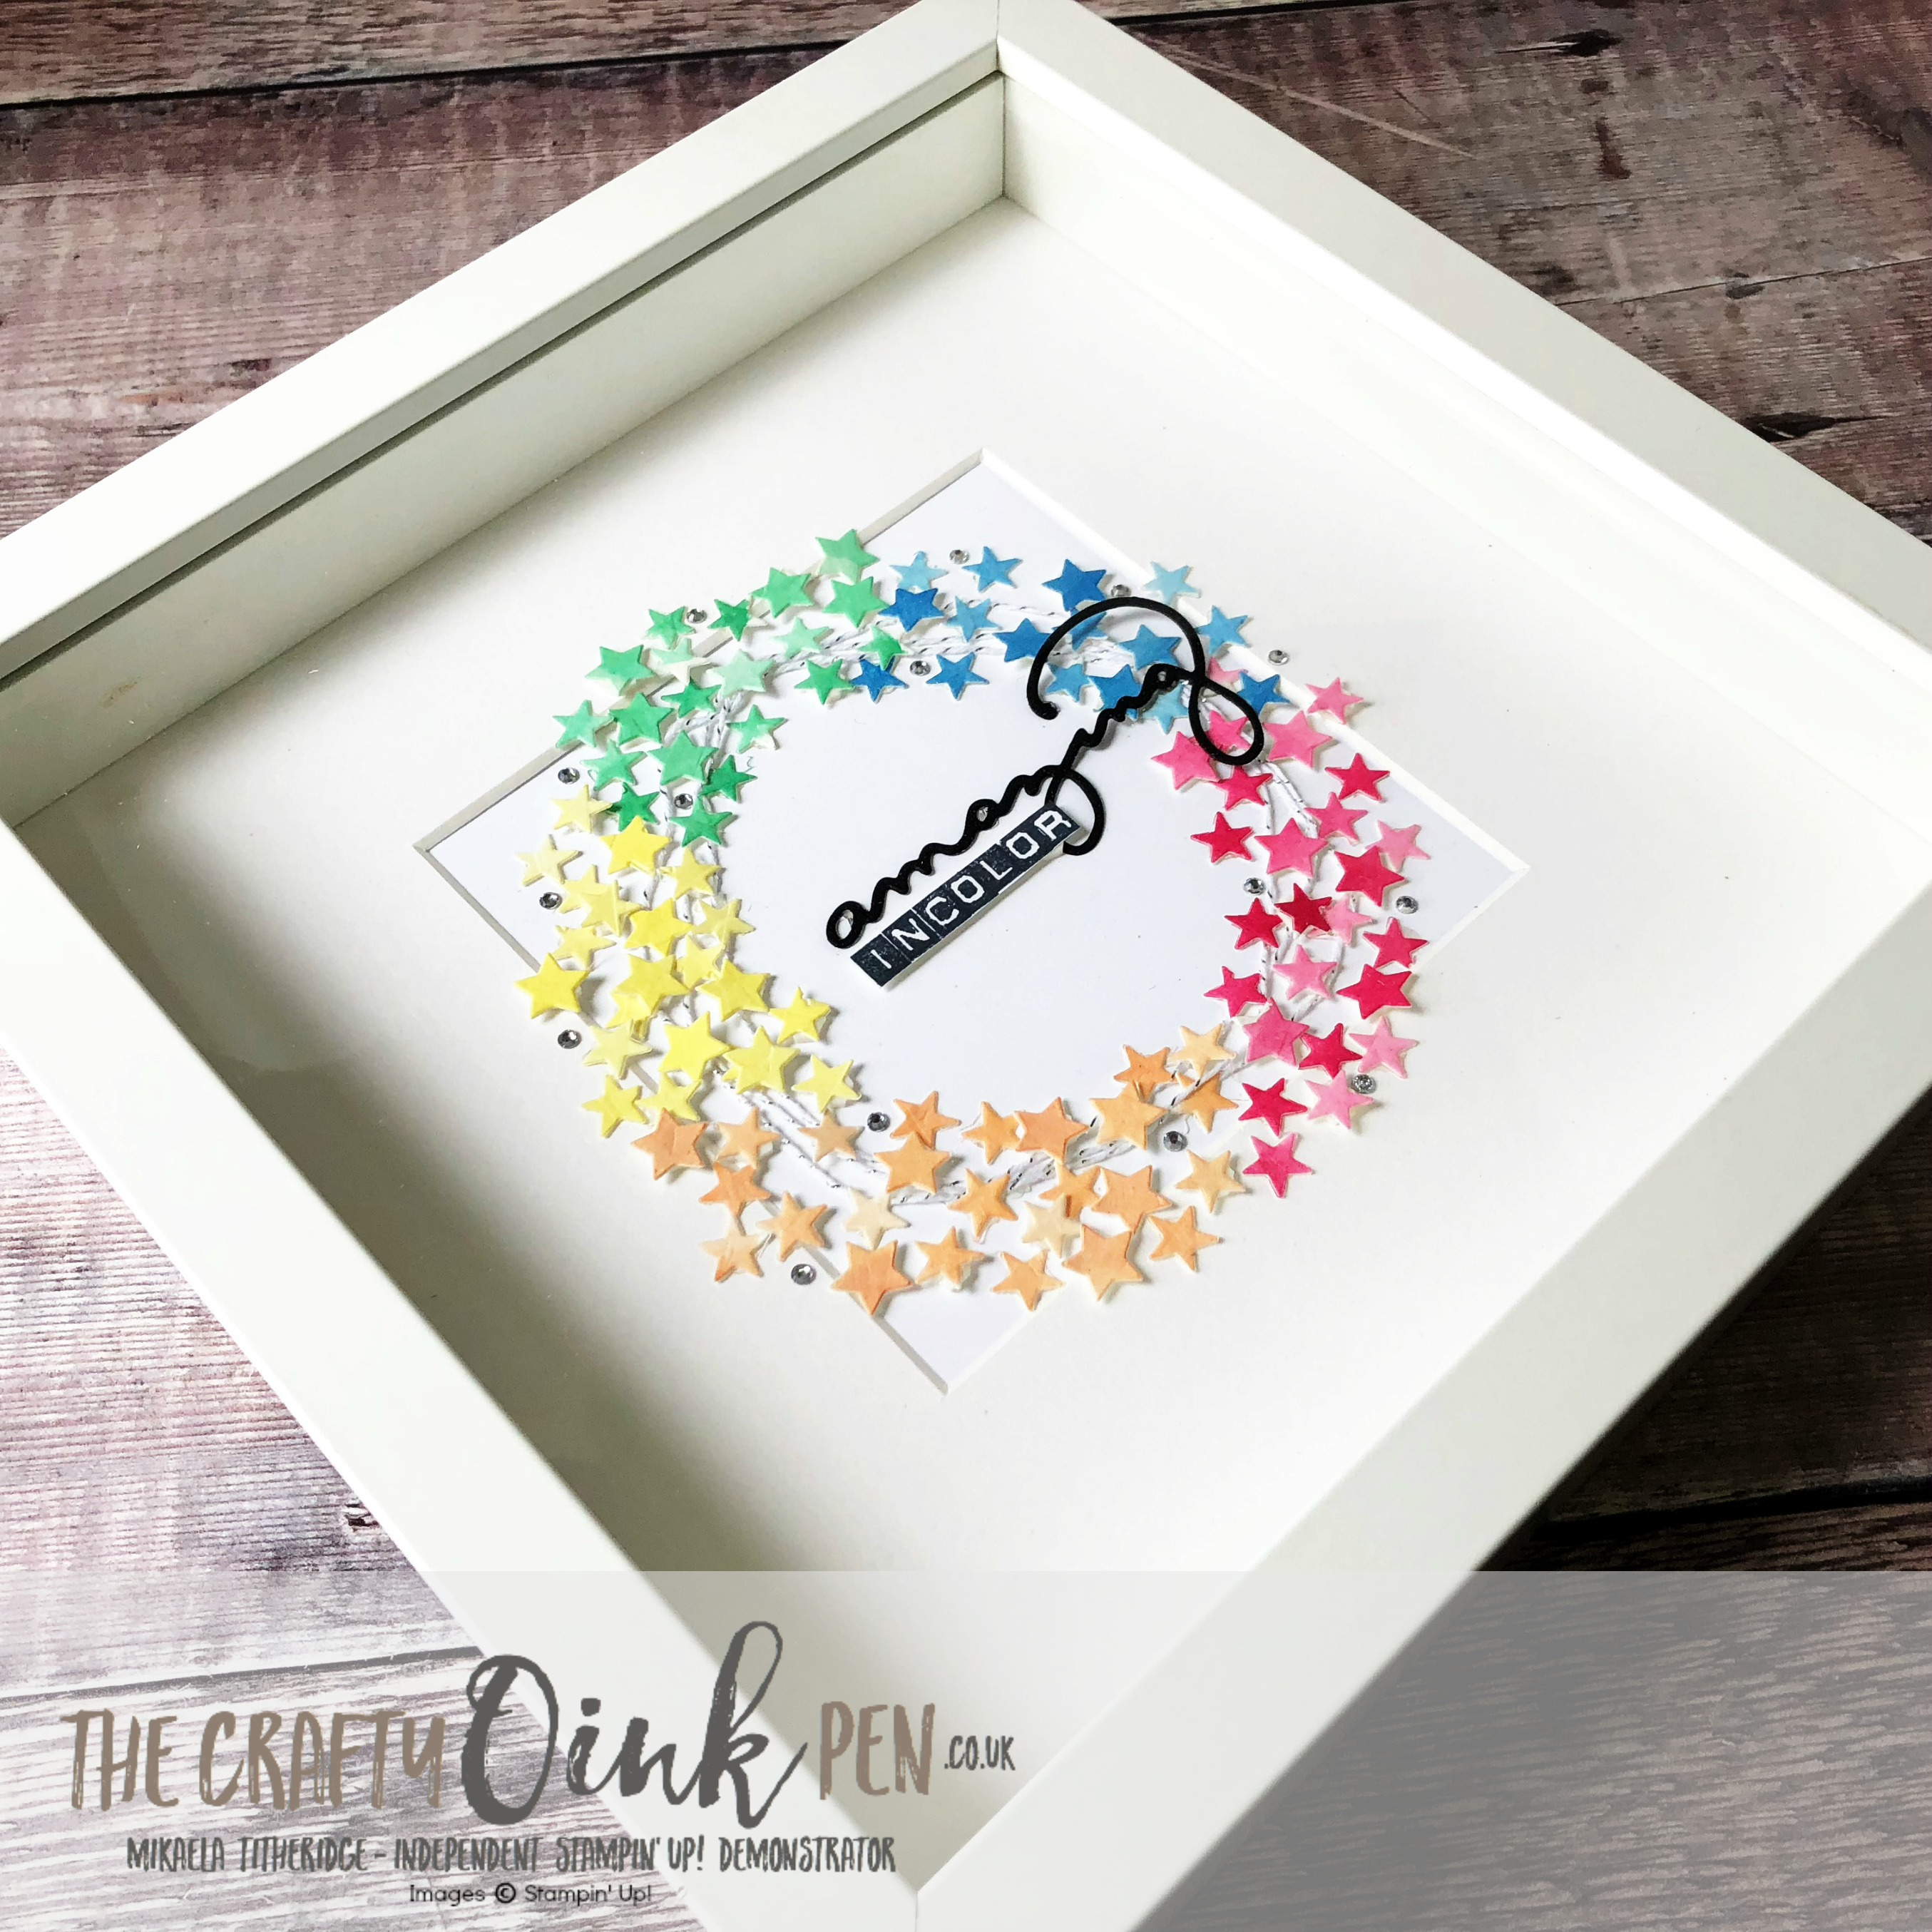 Stampin' Up! Pre Order Products In Colors 2018-2020 have helped create this Box Frame of Stars by Mikaela Titheridge, #6UK Independent Stampin' Up! Demonstrator, The Crafty oINK Pen. Supplies available through my online store 24/7